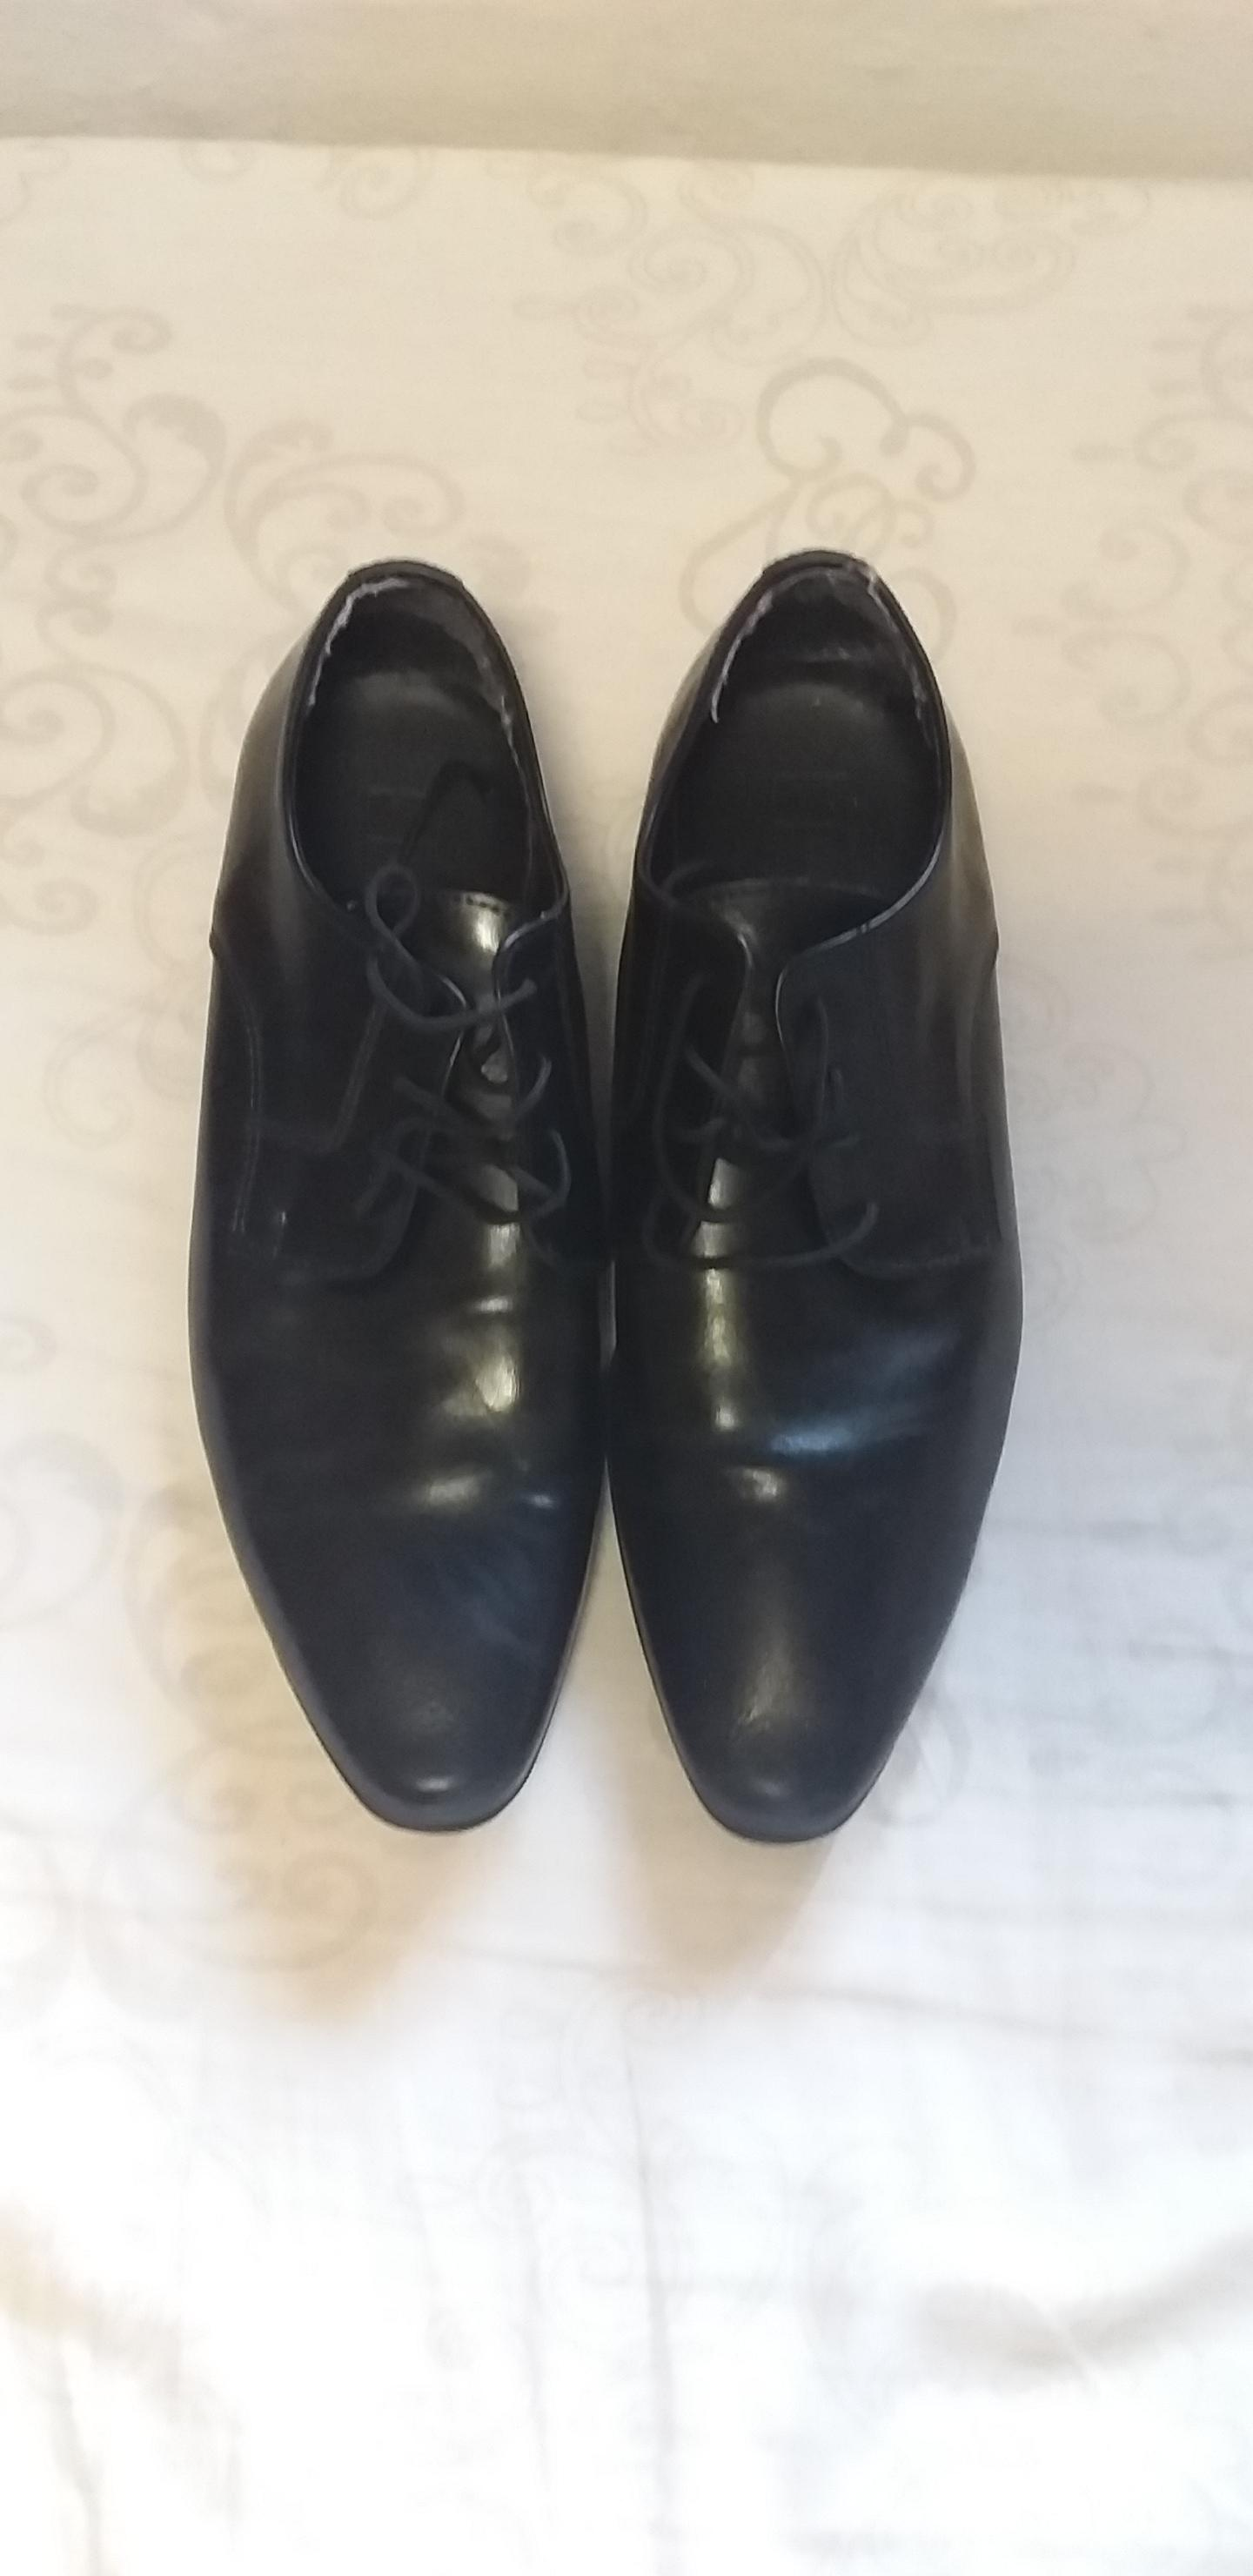 Black formal shoes.